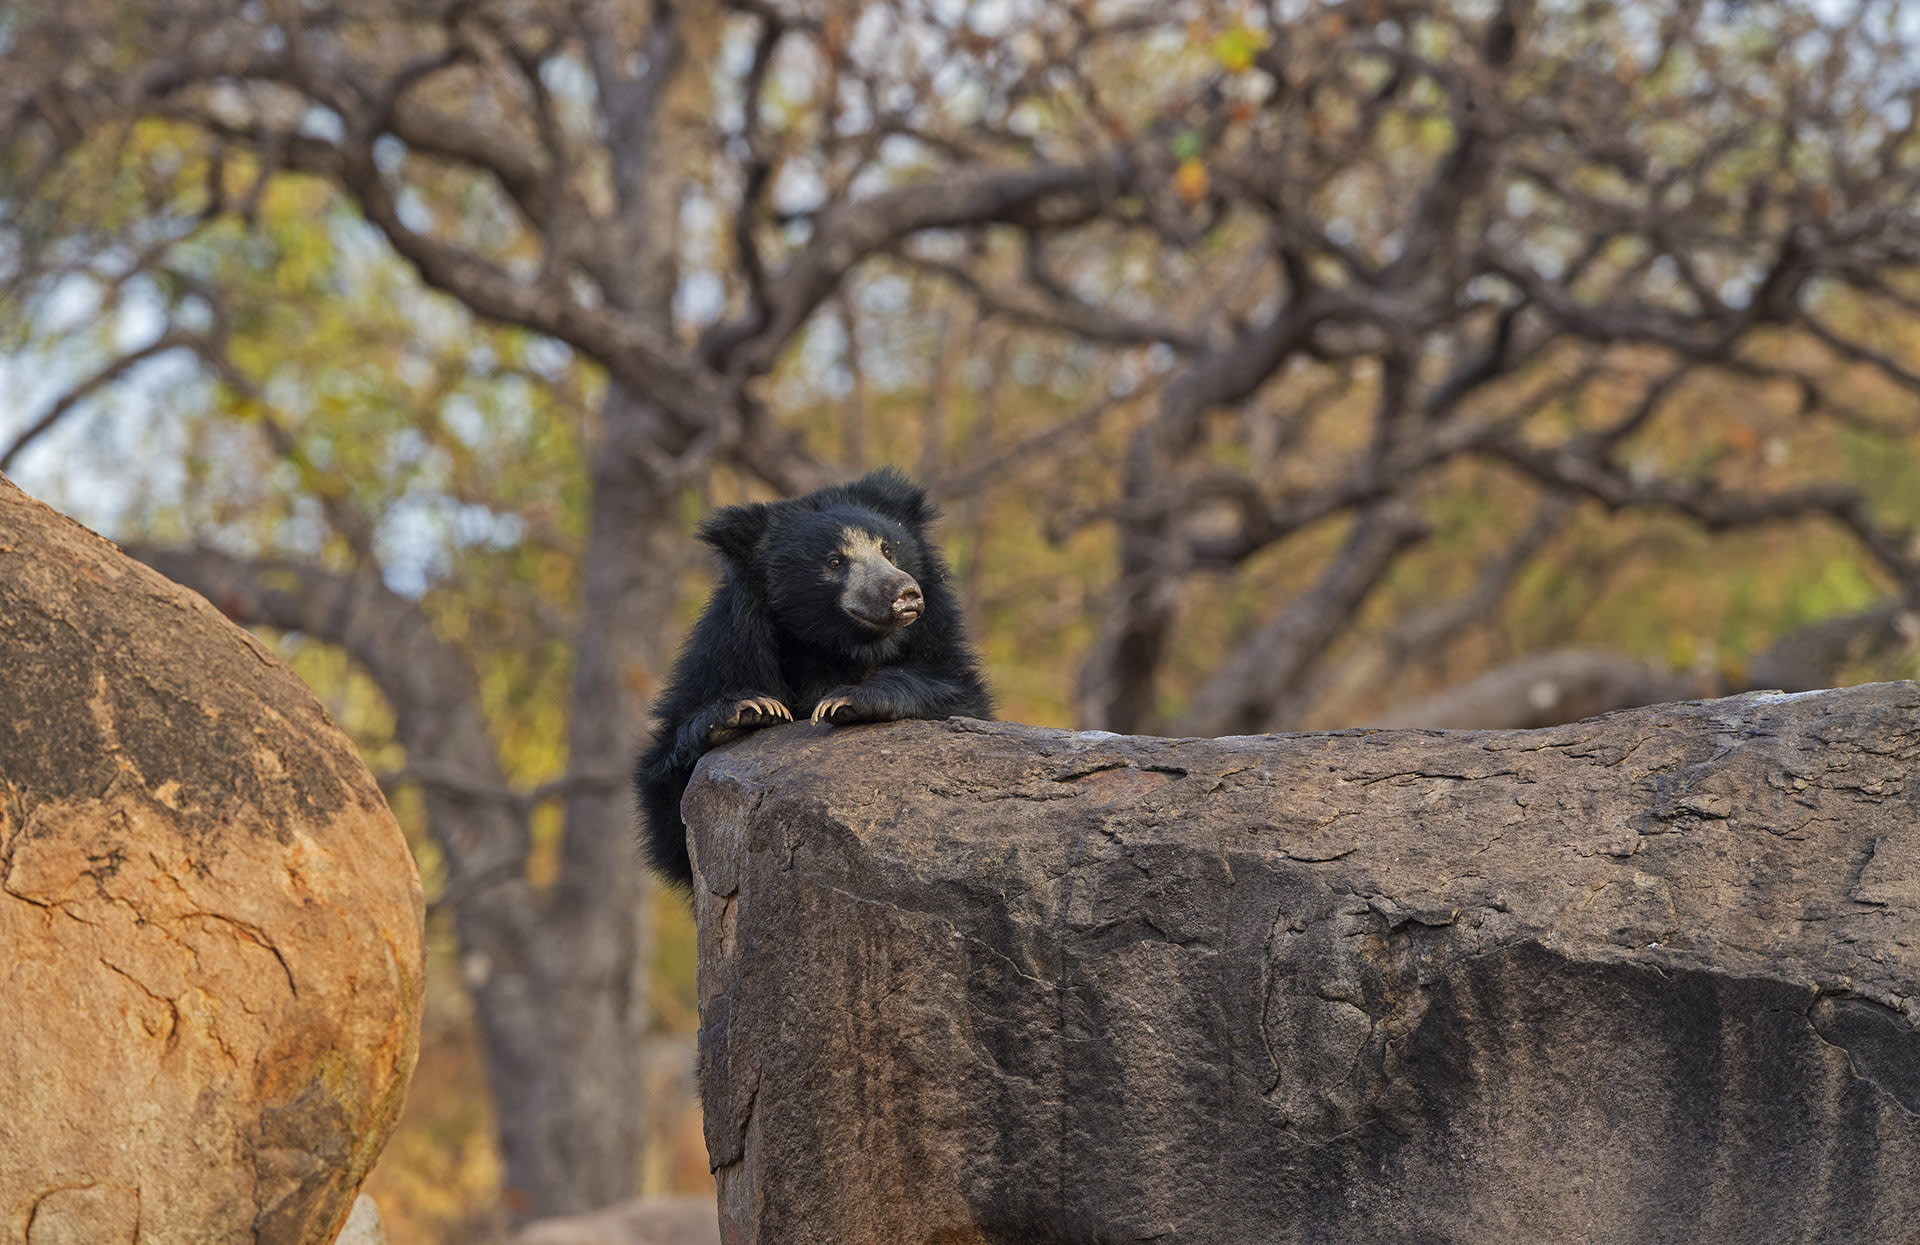 """Sloth bears are largely solitary, save for mature females in the company of their young. Their movements vary according to the time of year, phase of the life cycle, and proximity to human habitation. In wilder, forest areas, sloth bears emerge around dusk though """"sub-adults and females with dependent young limited their activity to daylight hours,"""" writes the authors of Mammals of South Asia, adding that """"this might be to temporarily avoid  other bears and predators."""""""